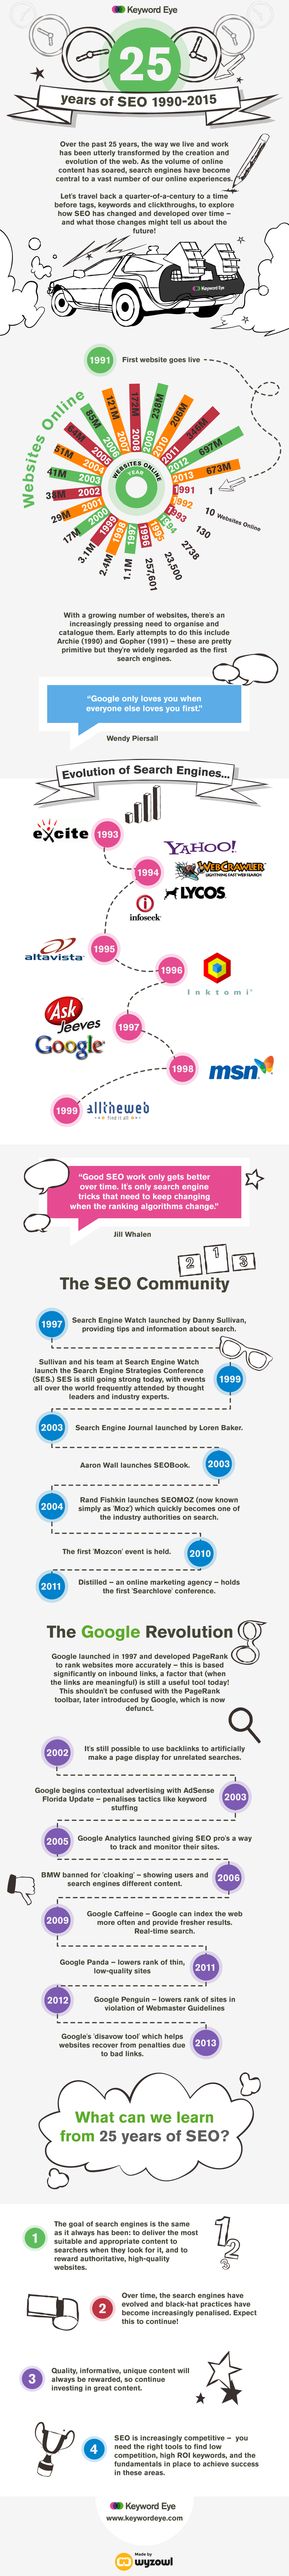 25 years of SEO infographic